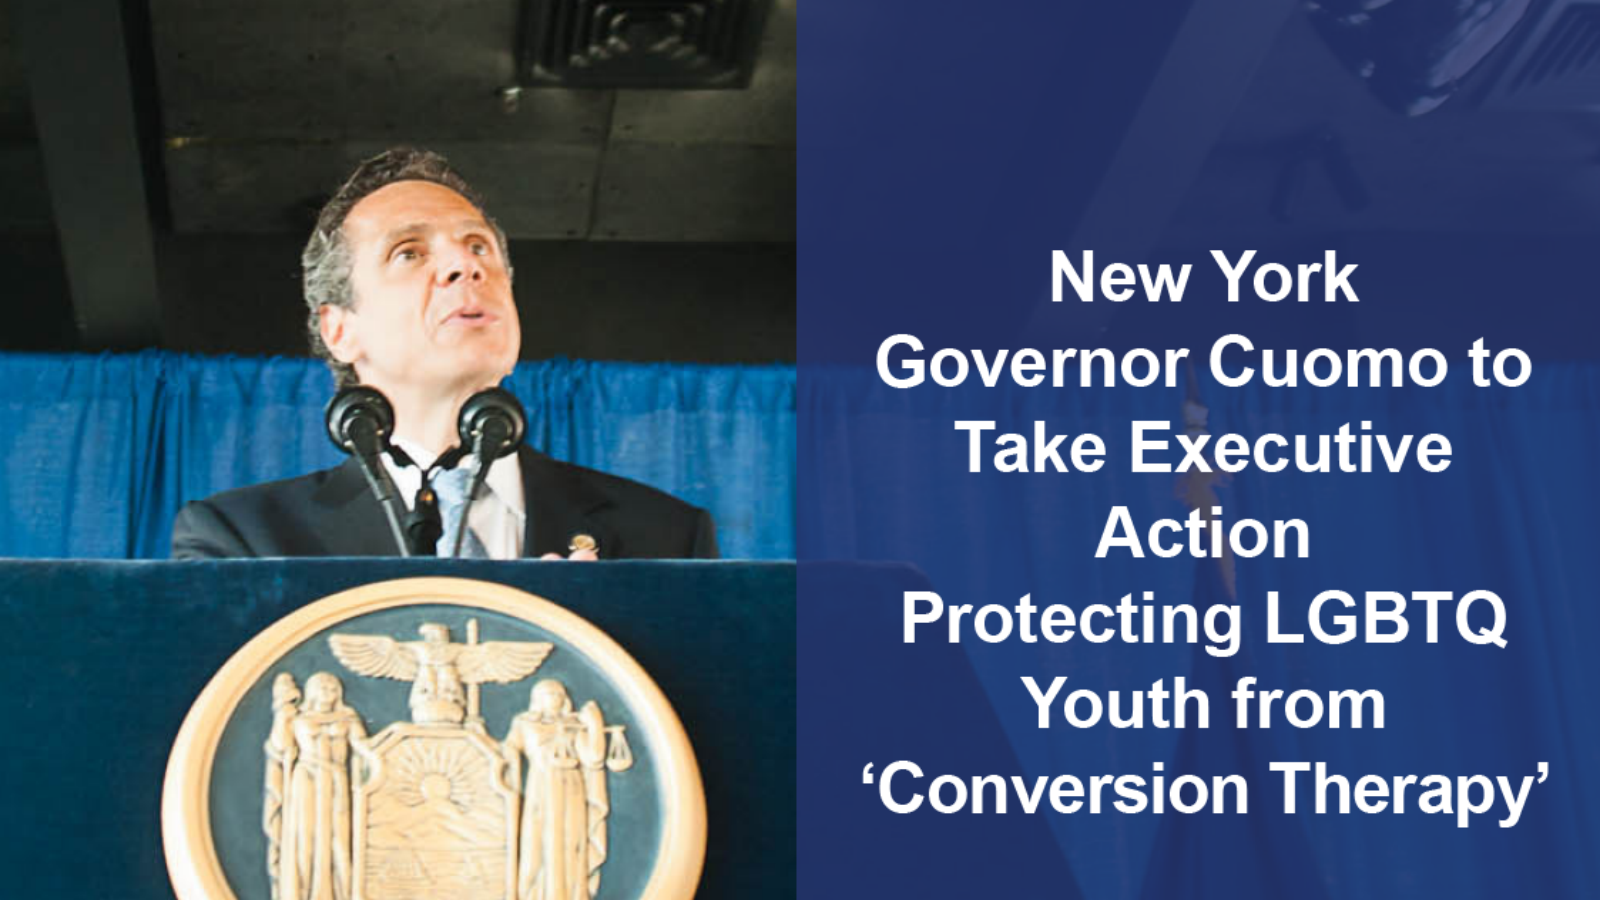 BREAKING: NY Gov. Cuomo Takes Action Protecting LGBTQ Youth from  Dangerous 'Conversion Therapy'